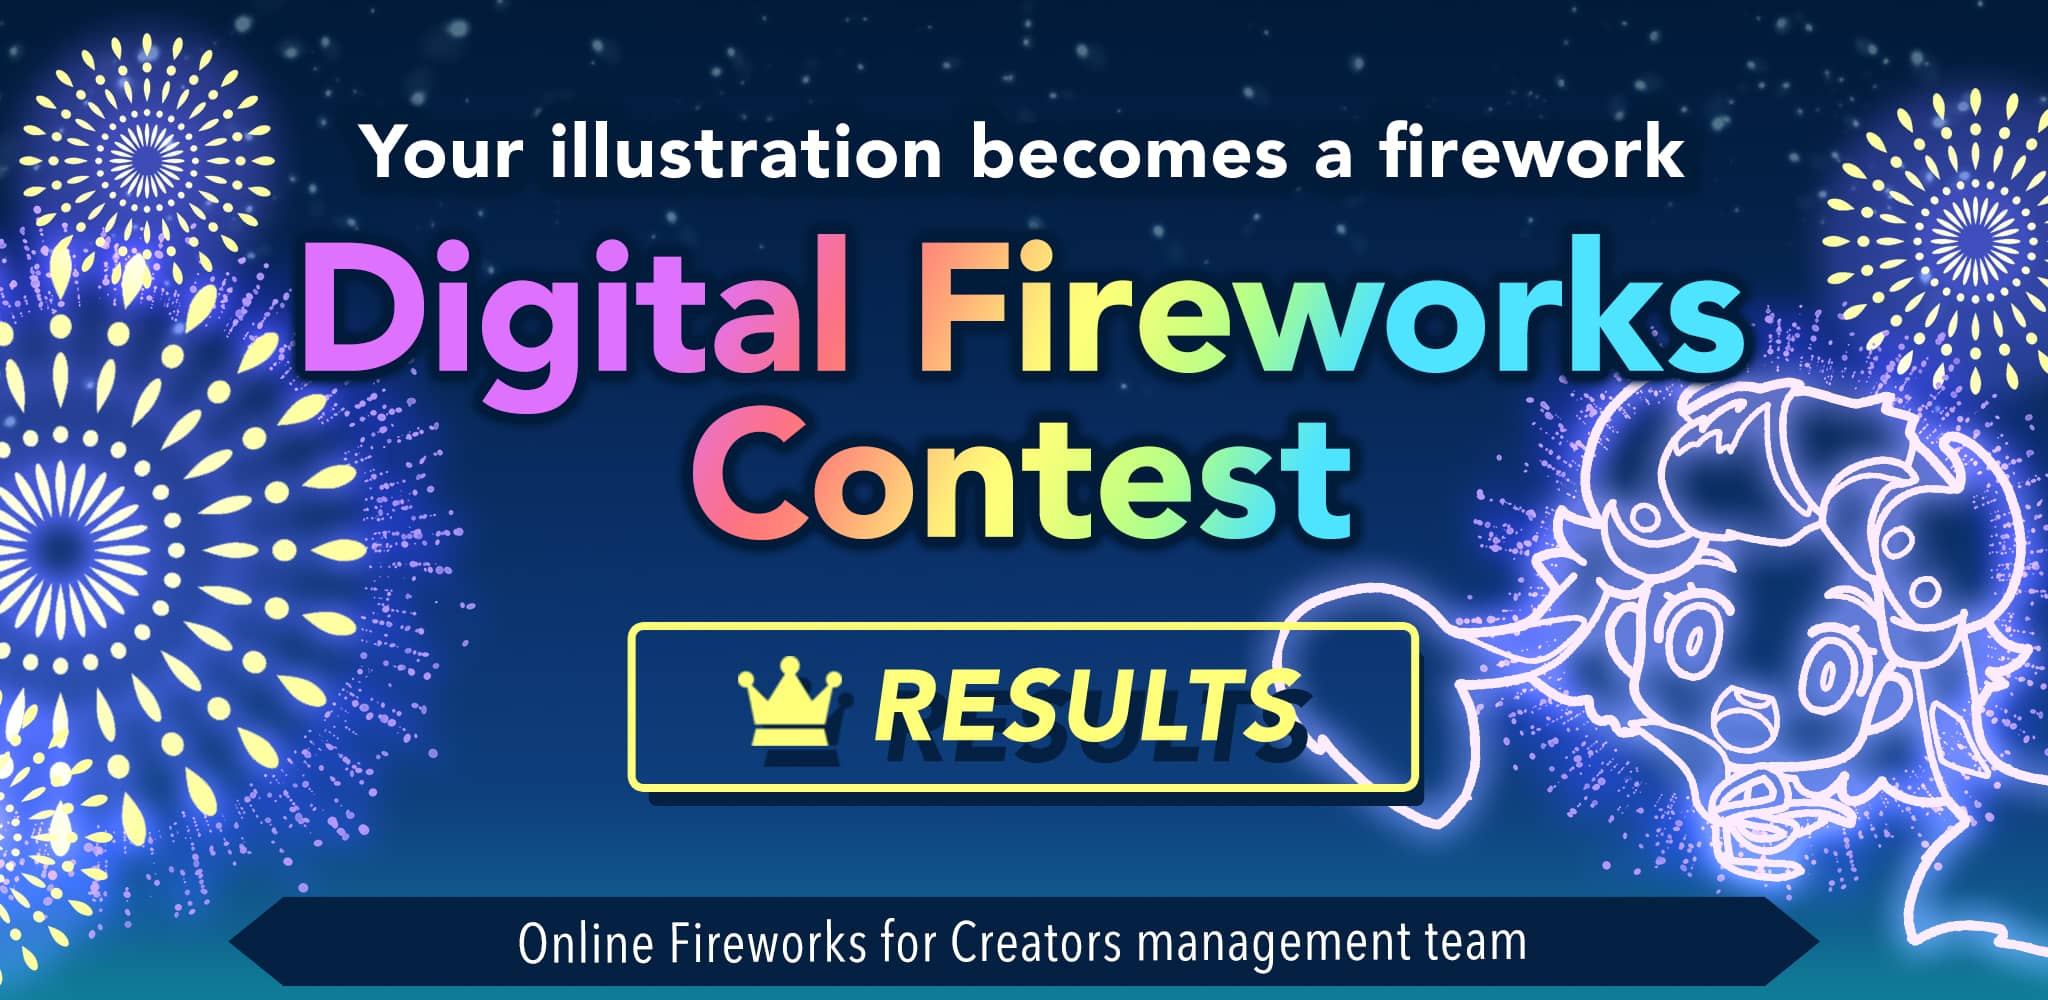 Digital Fireworks Contest Results | Contest - ART street by MediBang